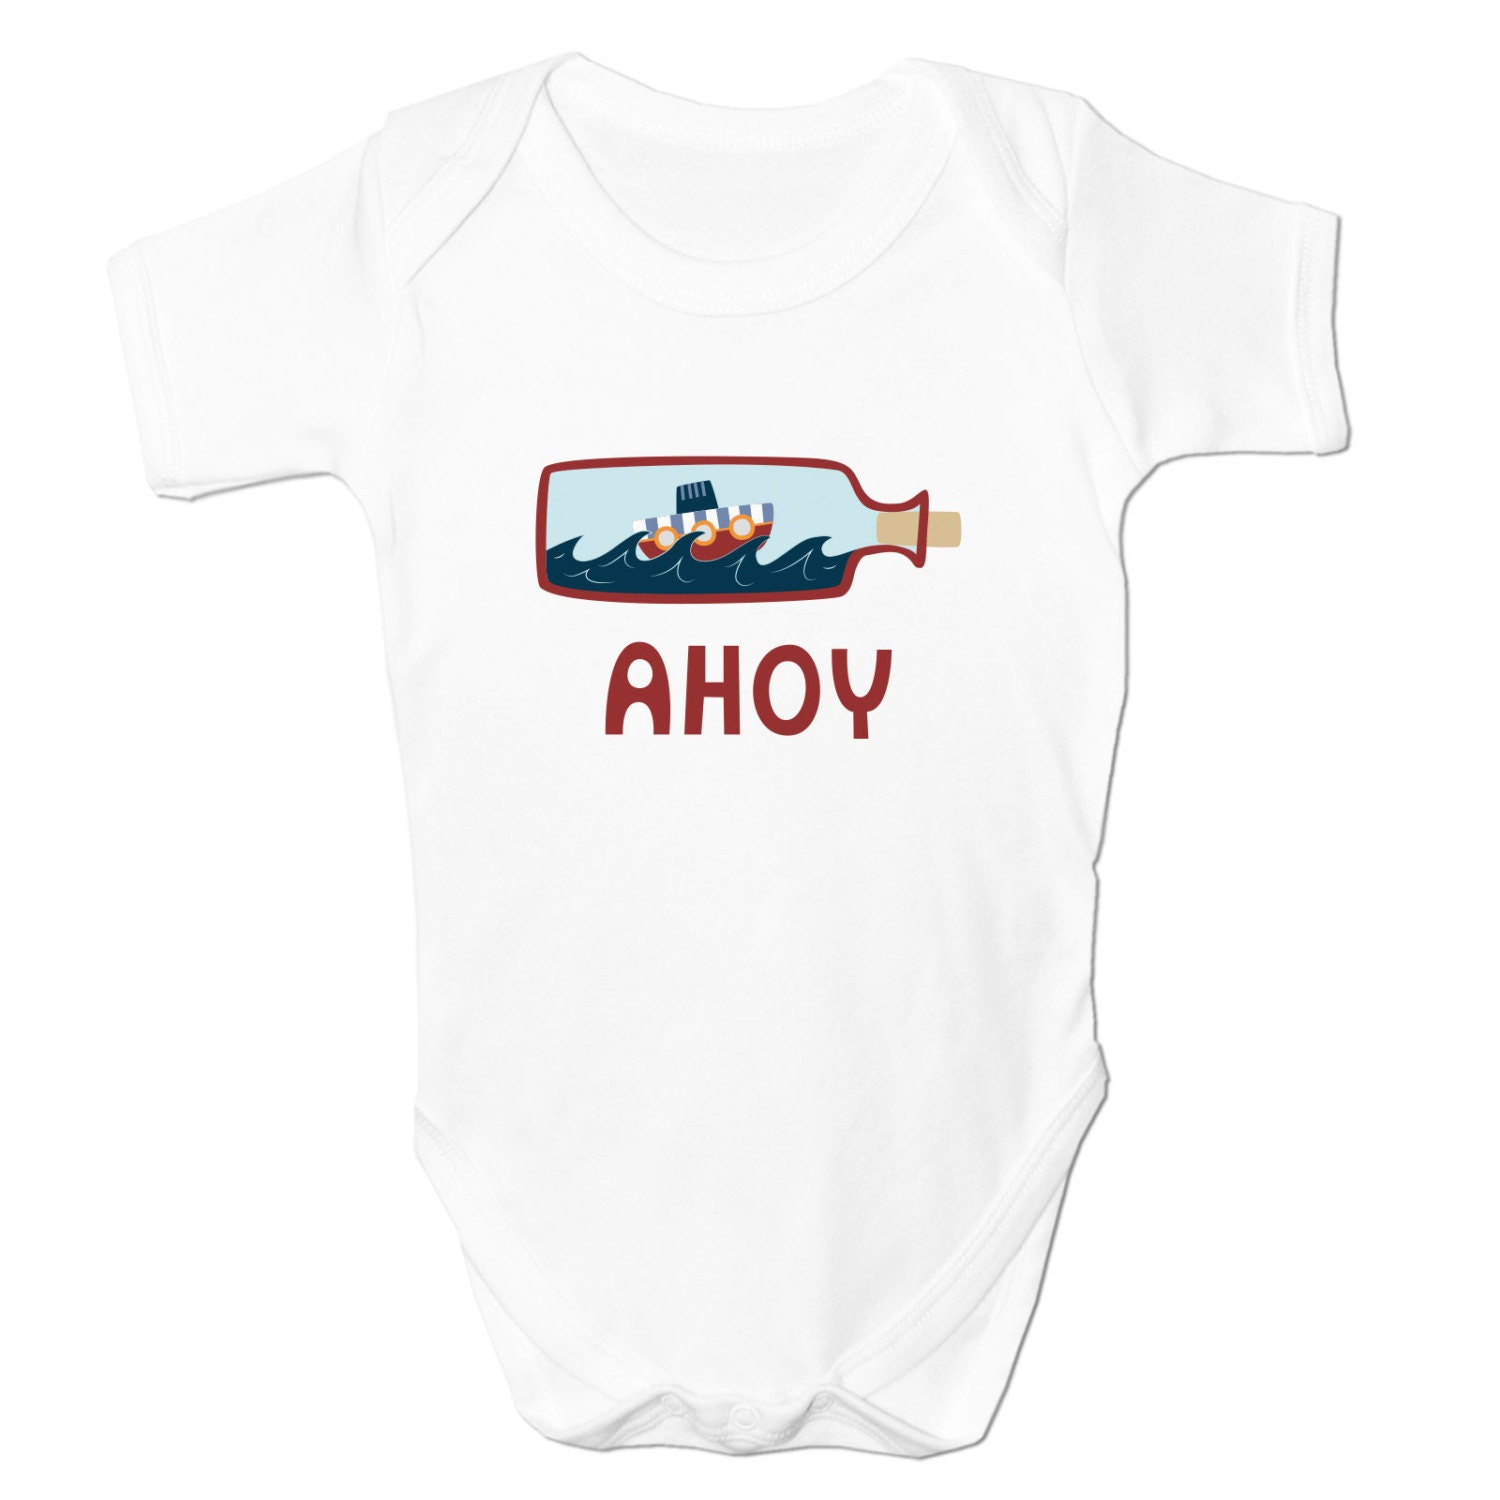 Funny BabyGrows Cute Baby Clothes for Baby Boy Baby Girl Bodysuit